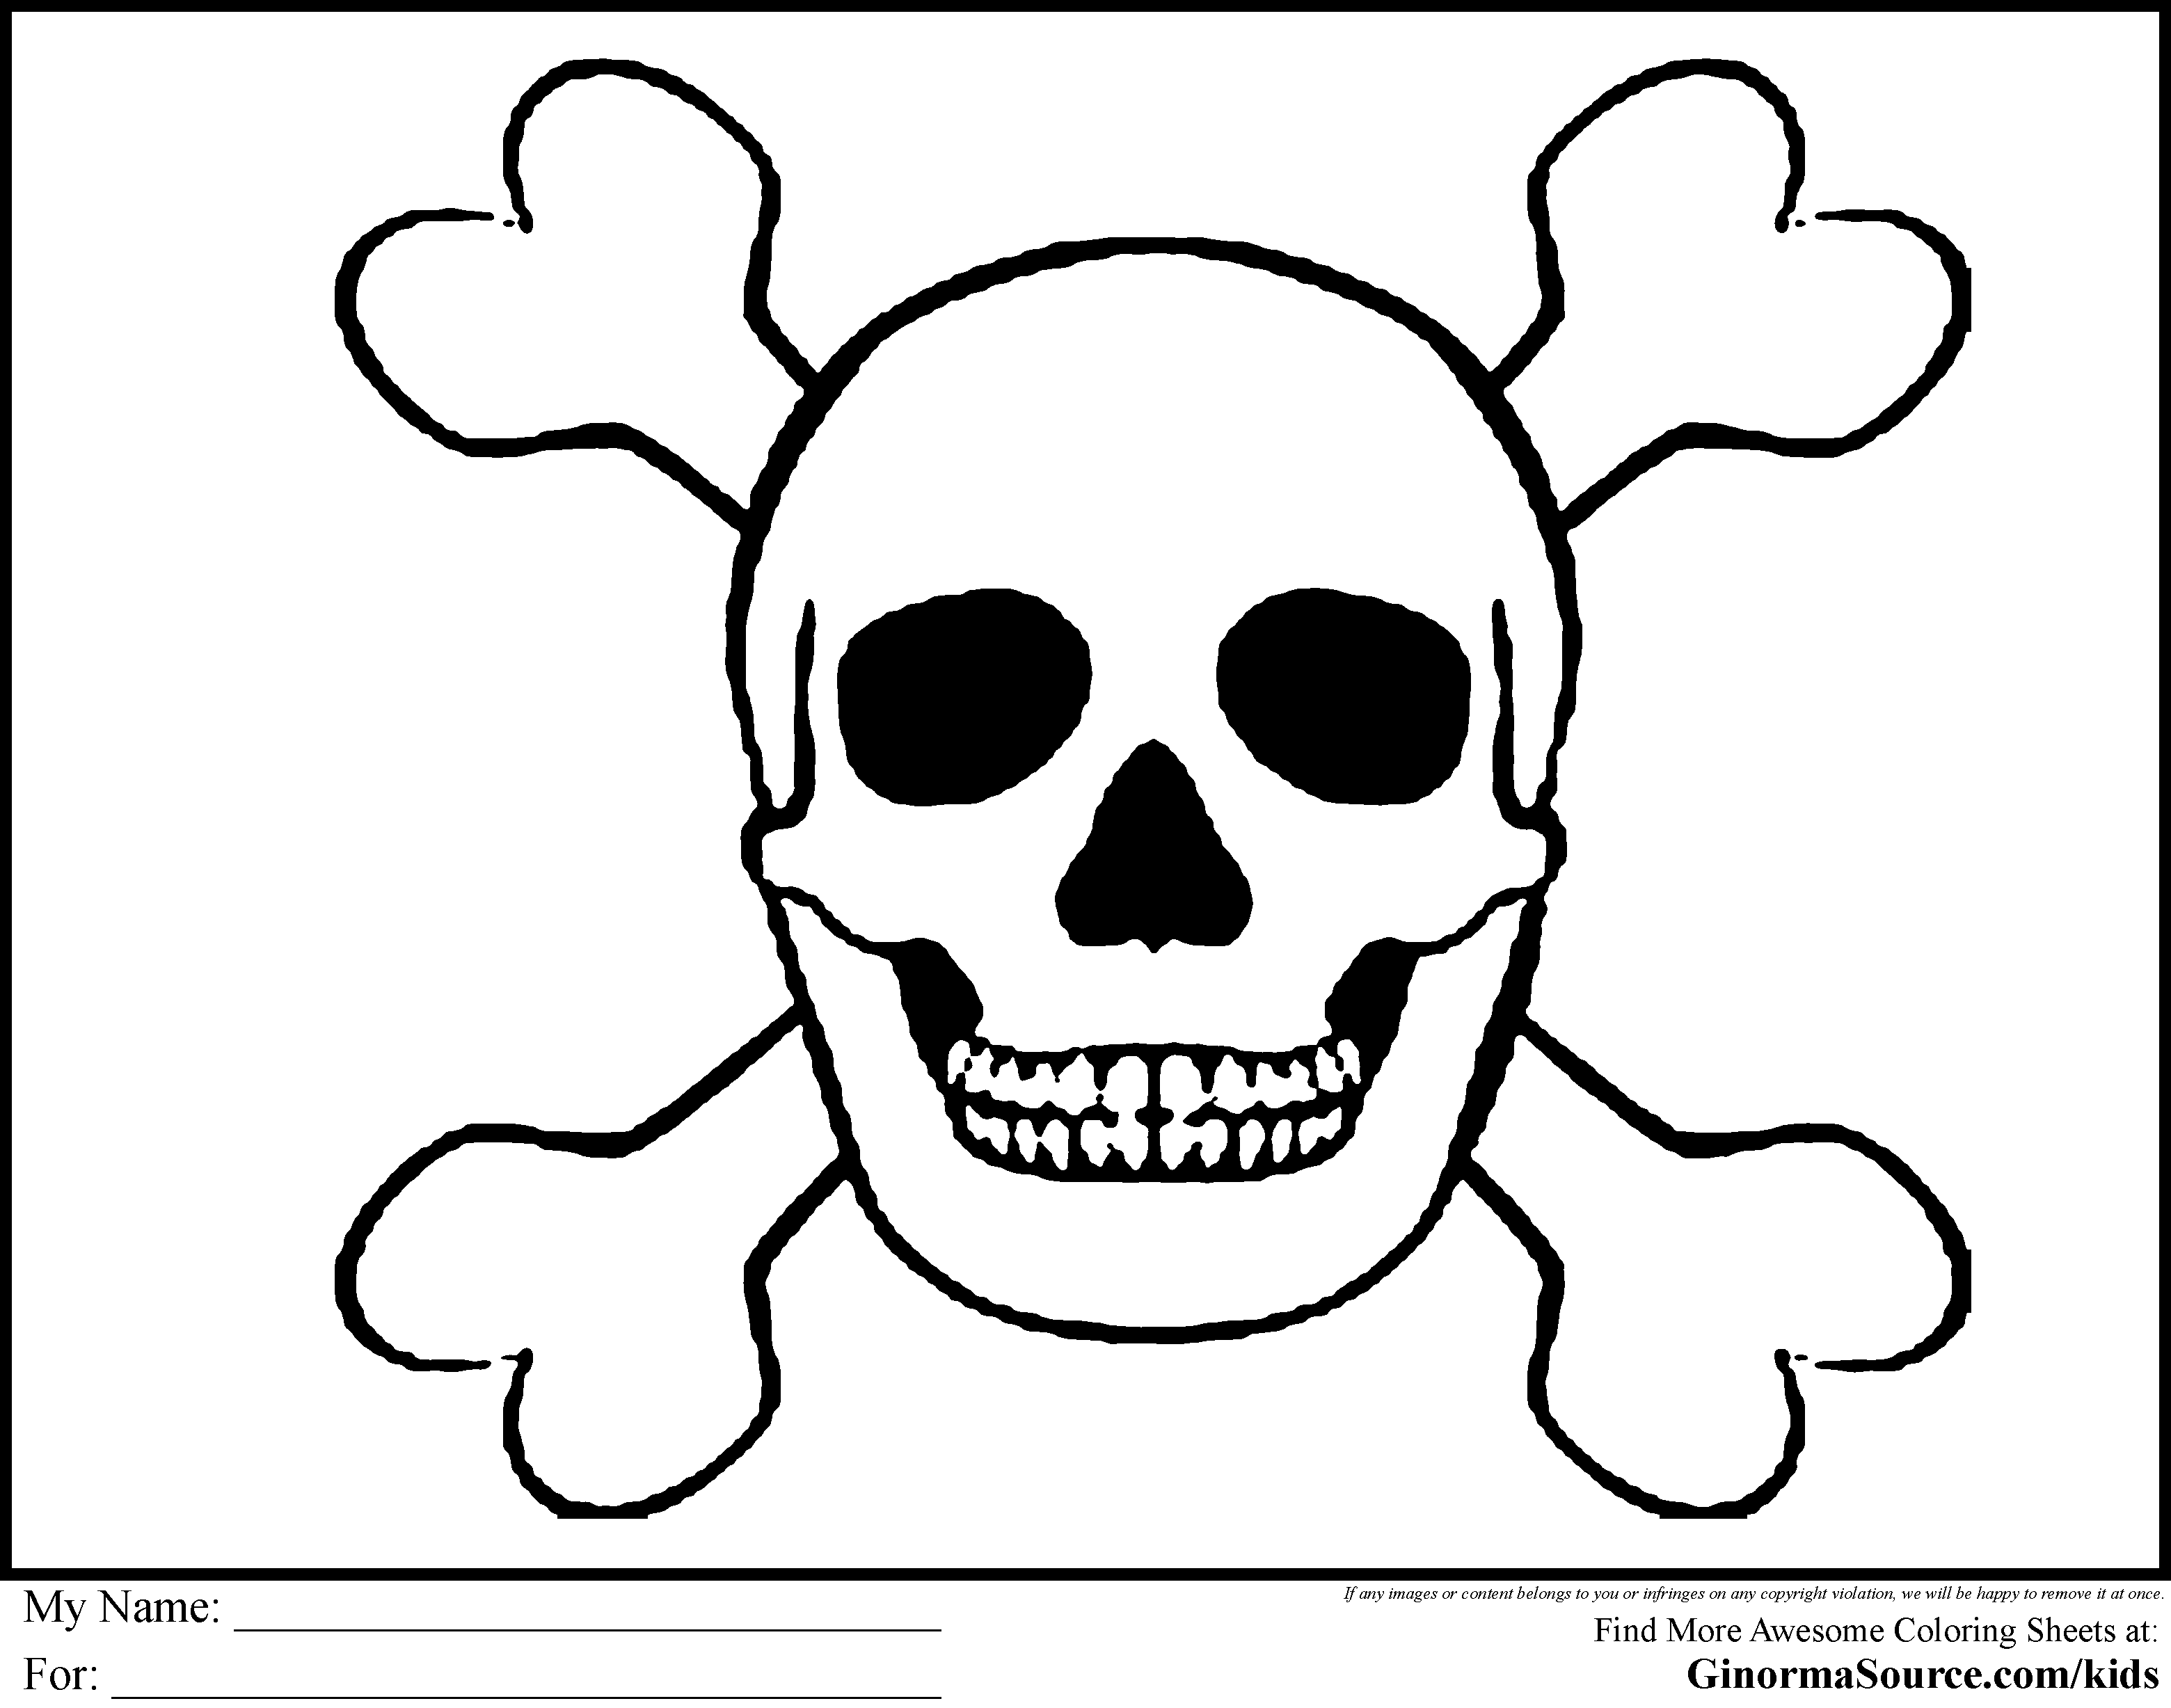 Pirate colouring pages to print - Pirate Coloring Pages Skull And Bones